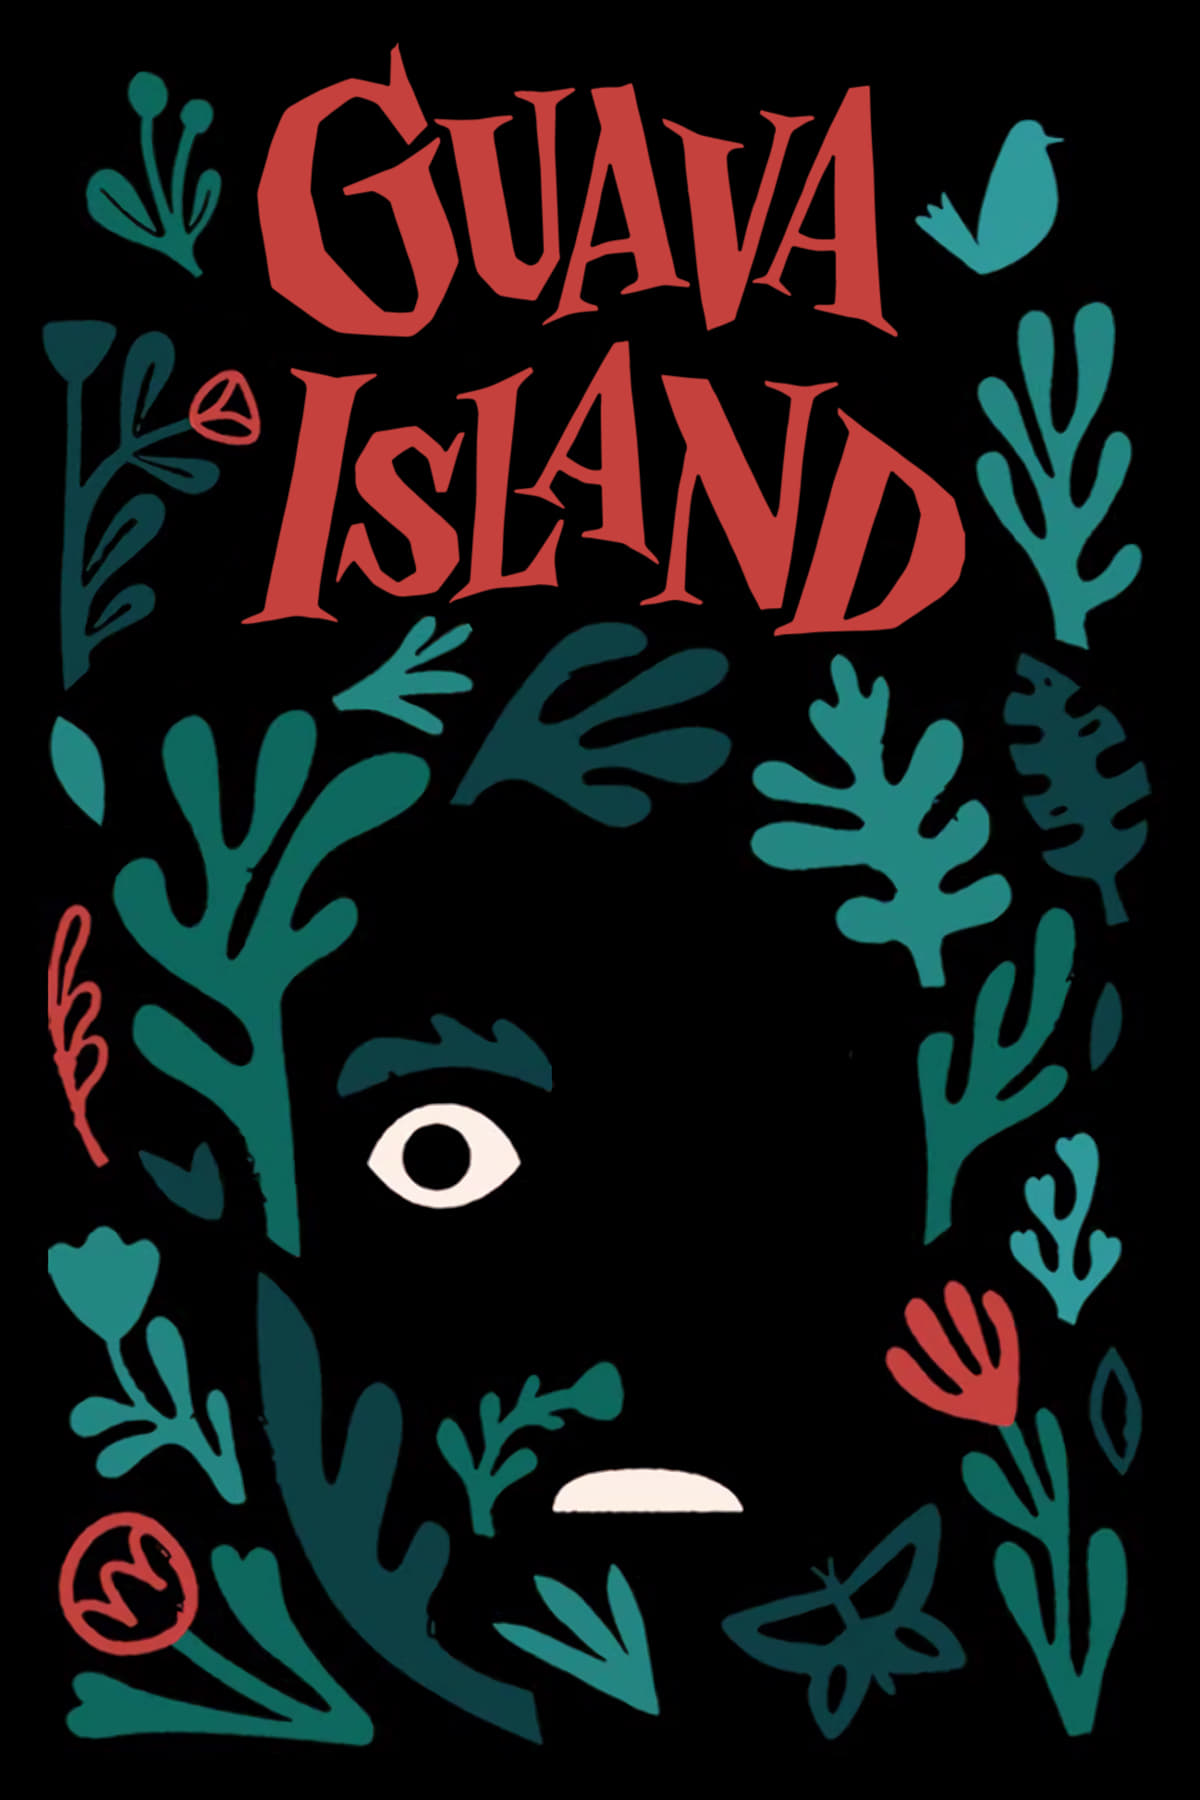 guava island poster.jpg